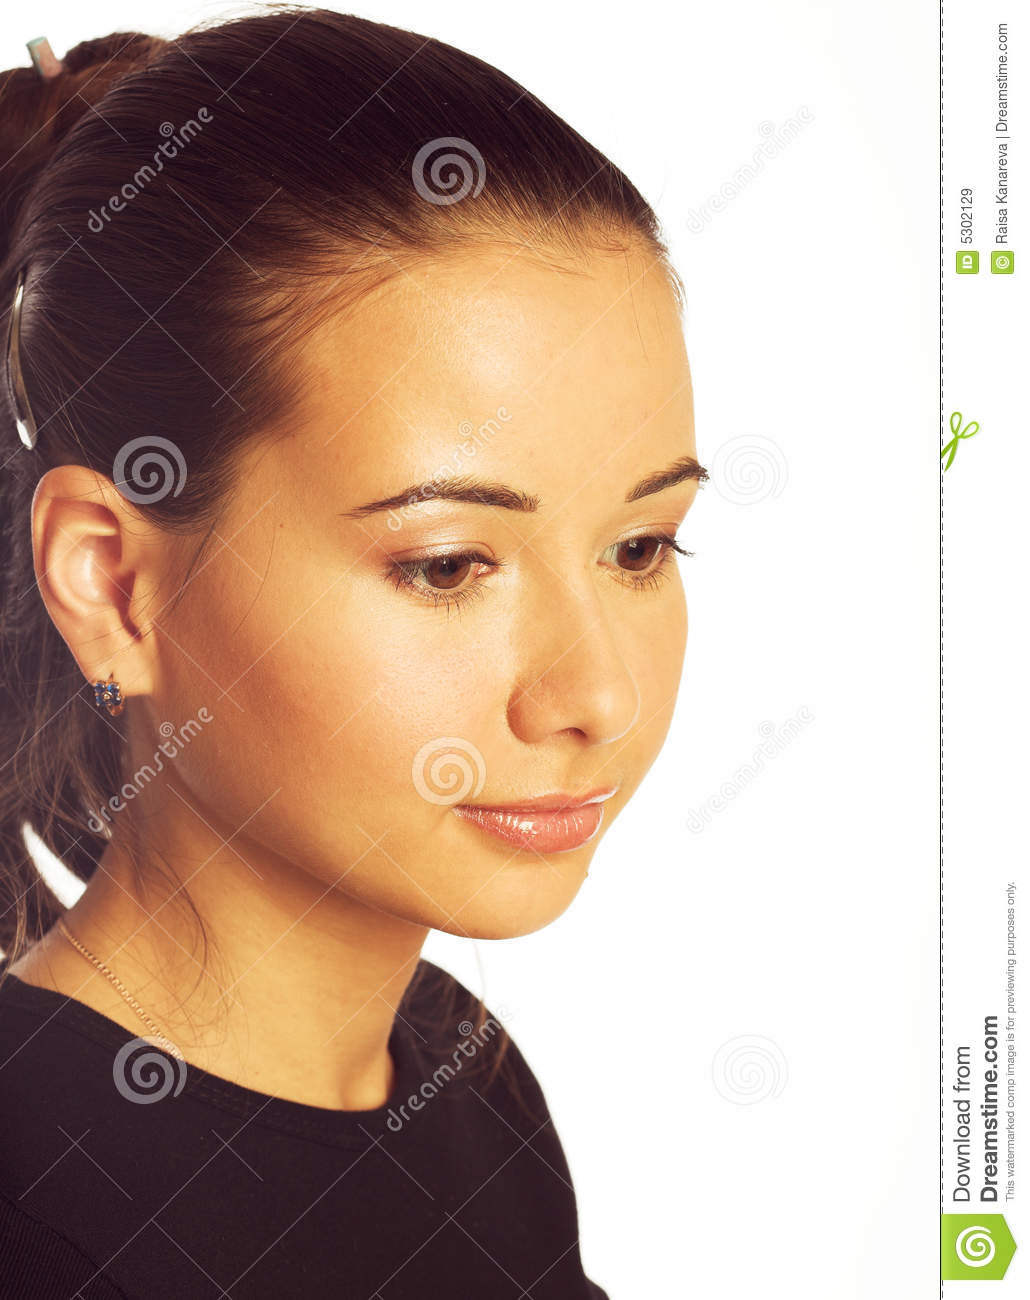 Download Ragazza Pensive immagine stock. Immagine di hairstyle - 5302129